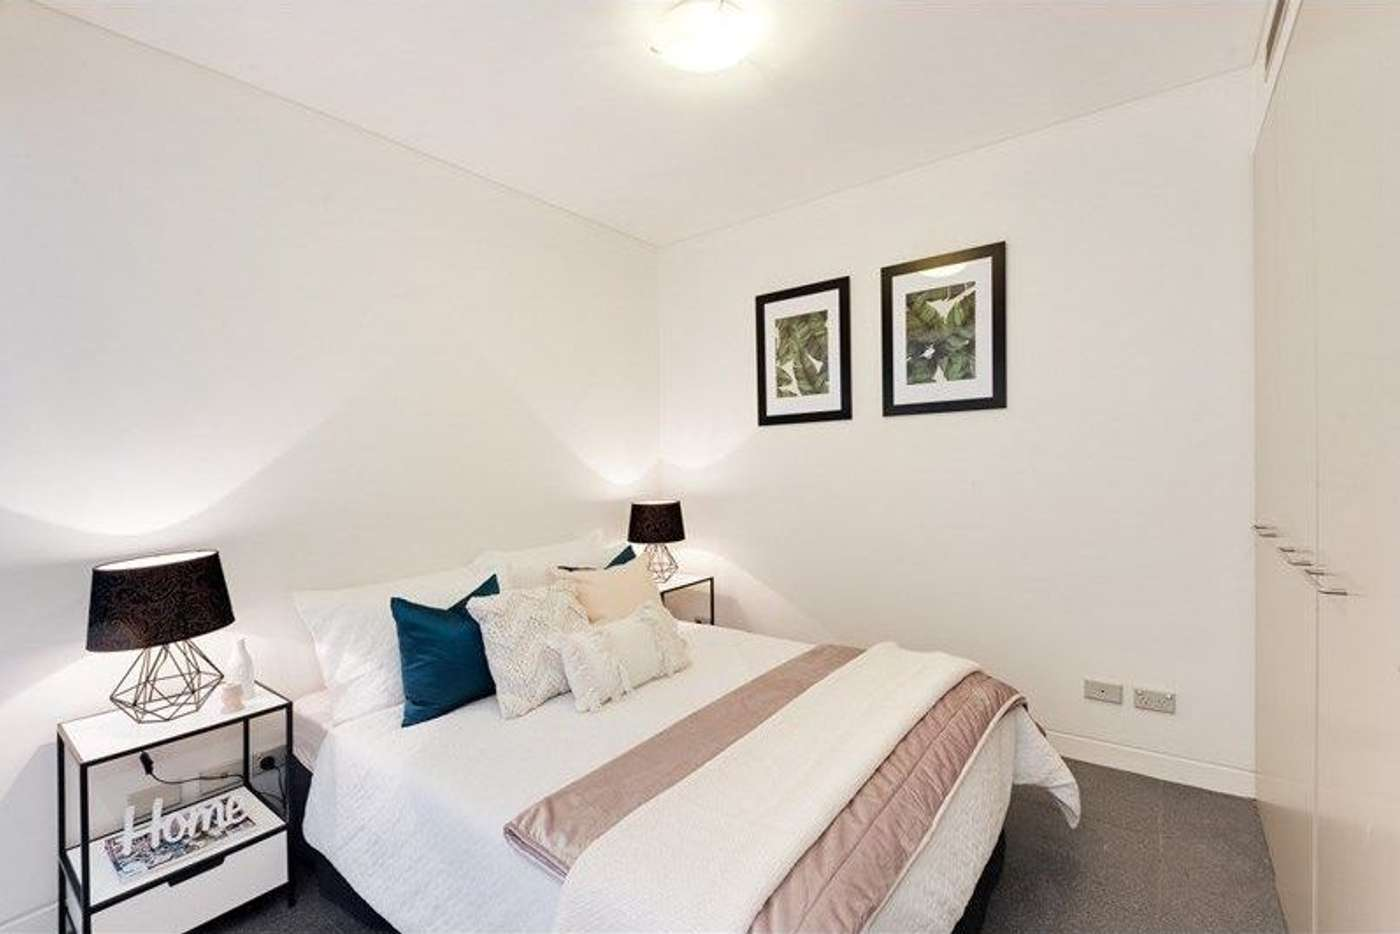 Fifth view of Homely apartment listing, 302/11 Chandos Street, St Leonards NSW 2065